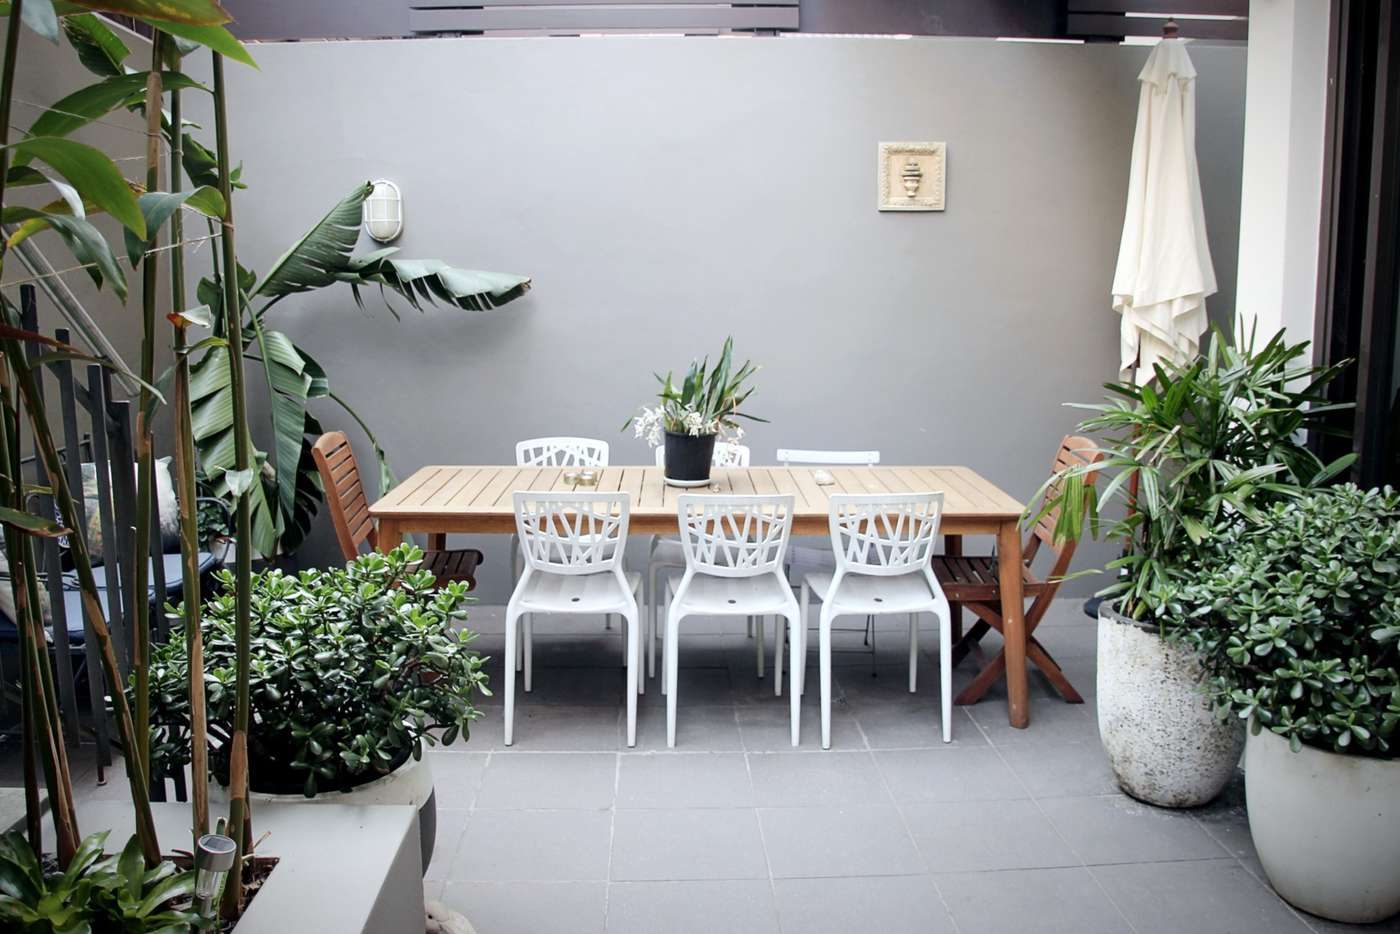 Main view of Homely apartment listing, 287 Pyrmont St, Ultimo NSW 2007